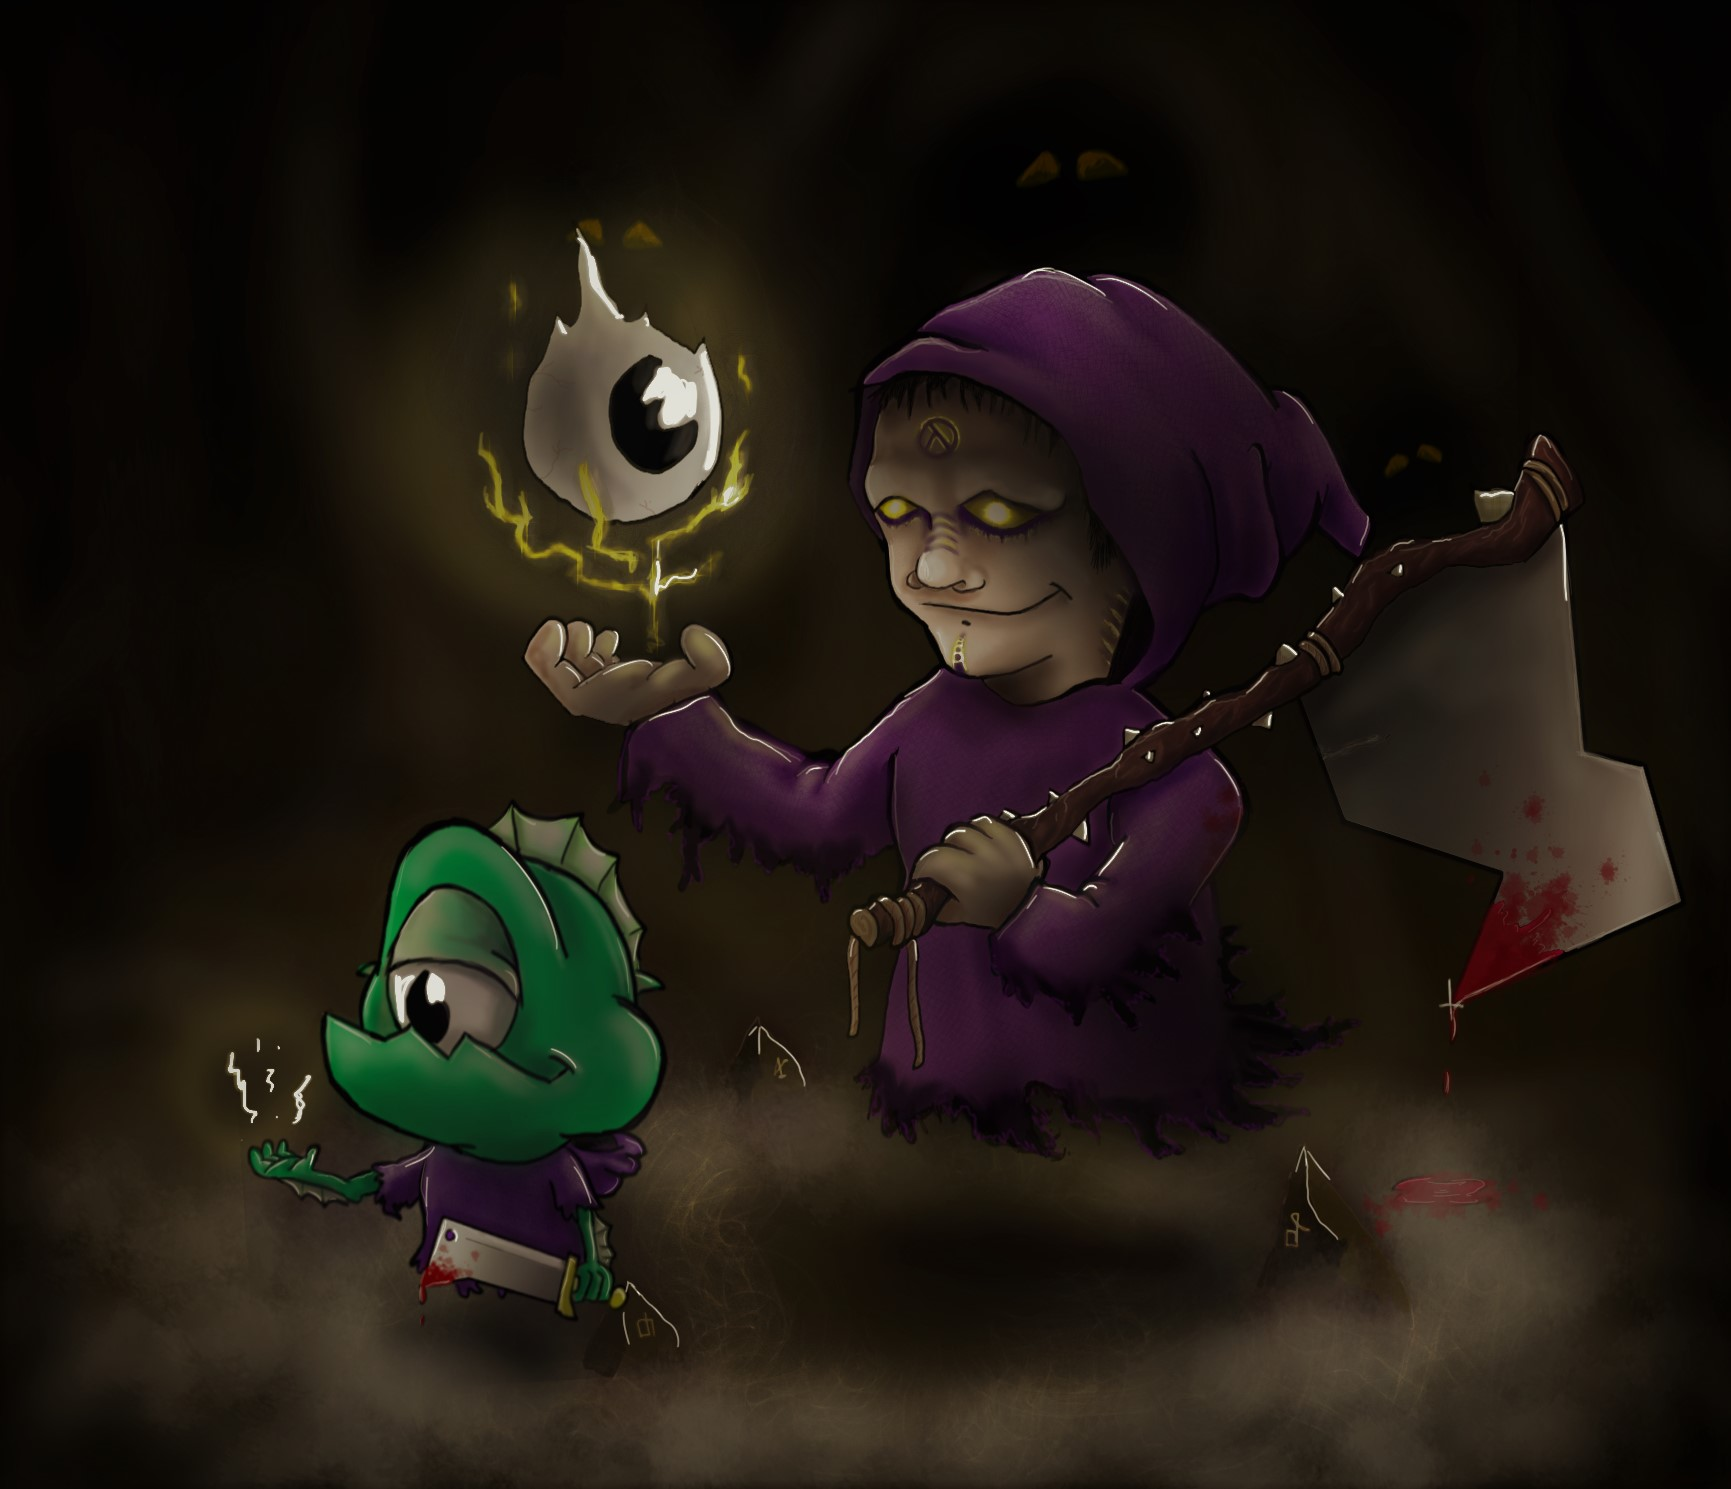 Wulfix the wizard and his little helper Waxin